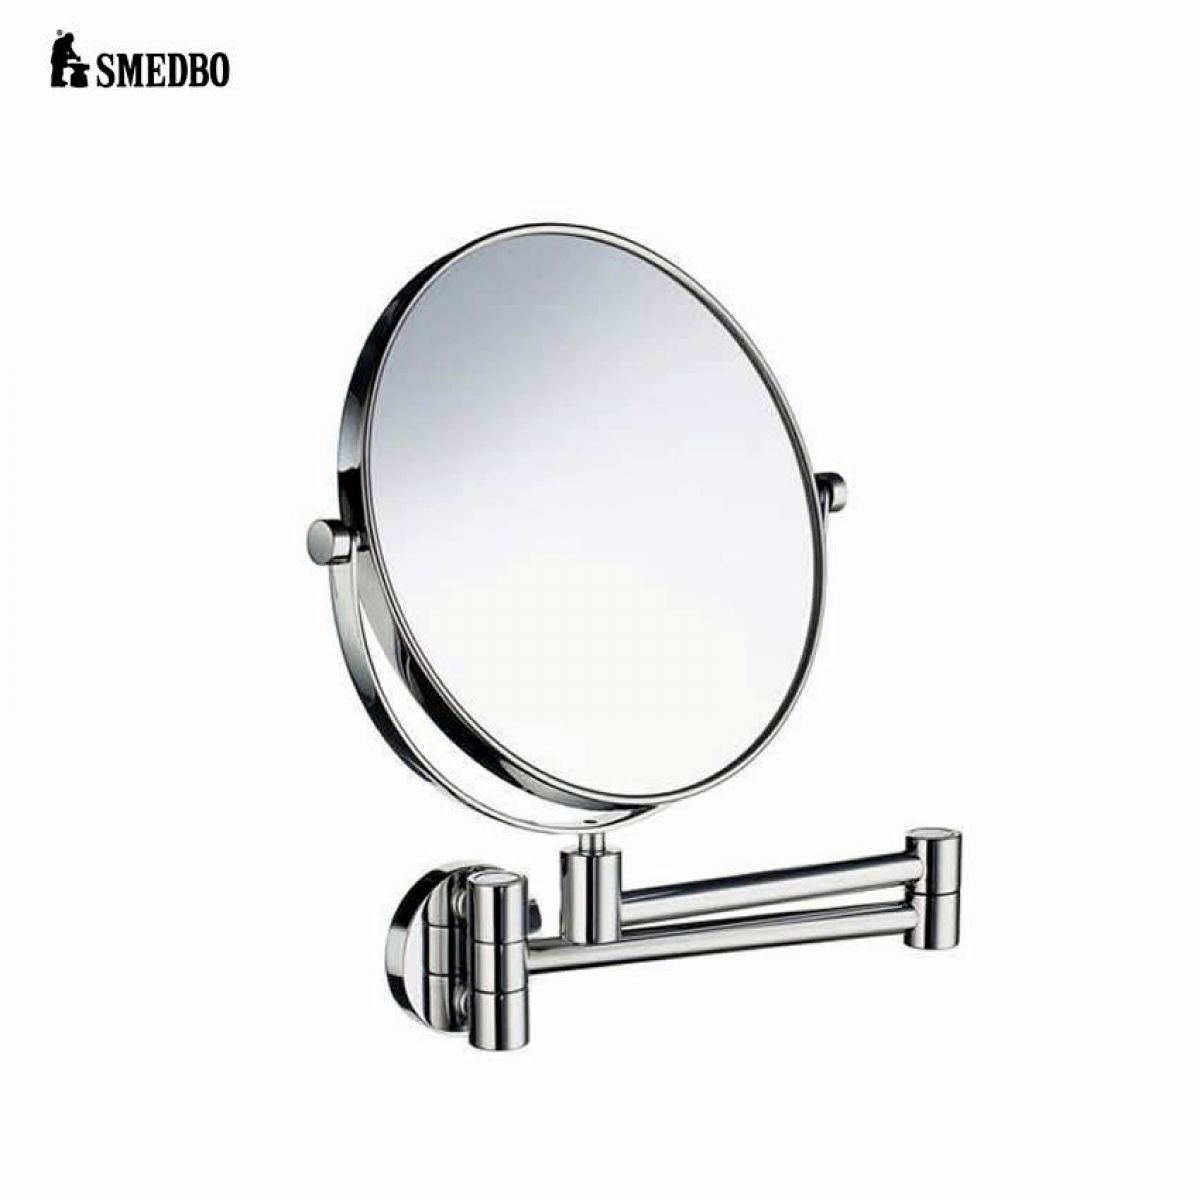 Smedbo Outline Swing Arm Shaving Make Up Mirror